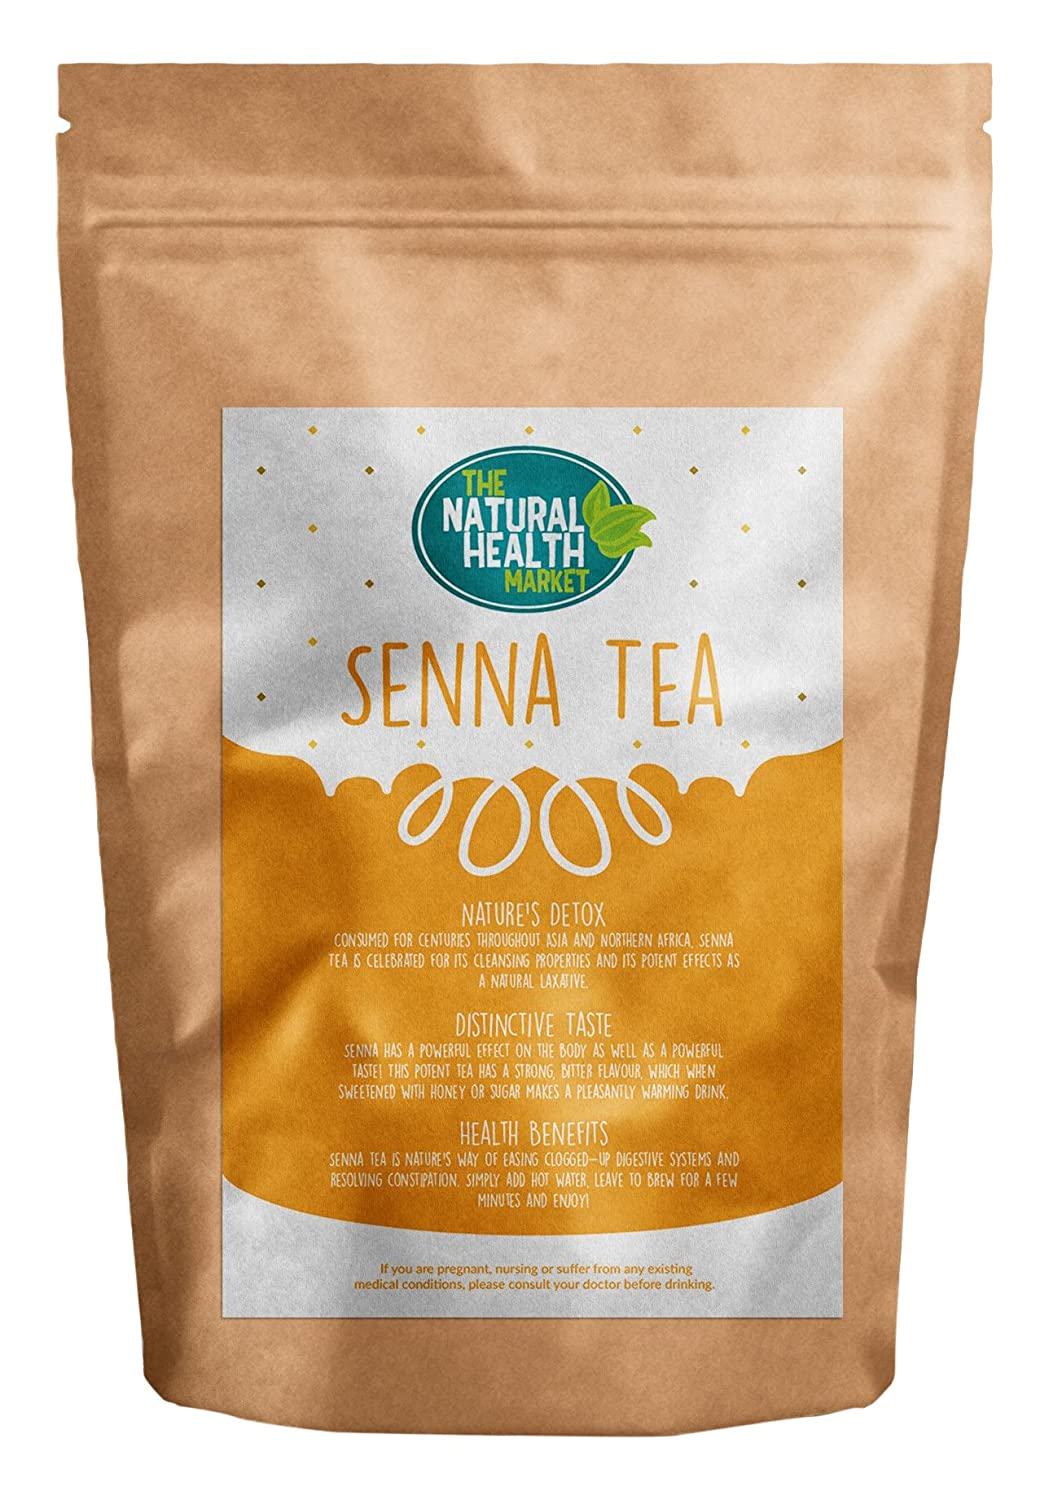 Bioslim herbal tea - Senna Tea Bags 100 Bags By The Natural Health Market Amazon Co Uk Grocery